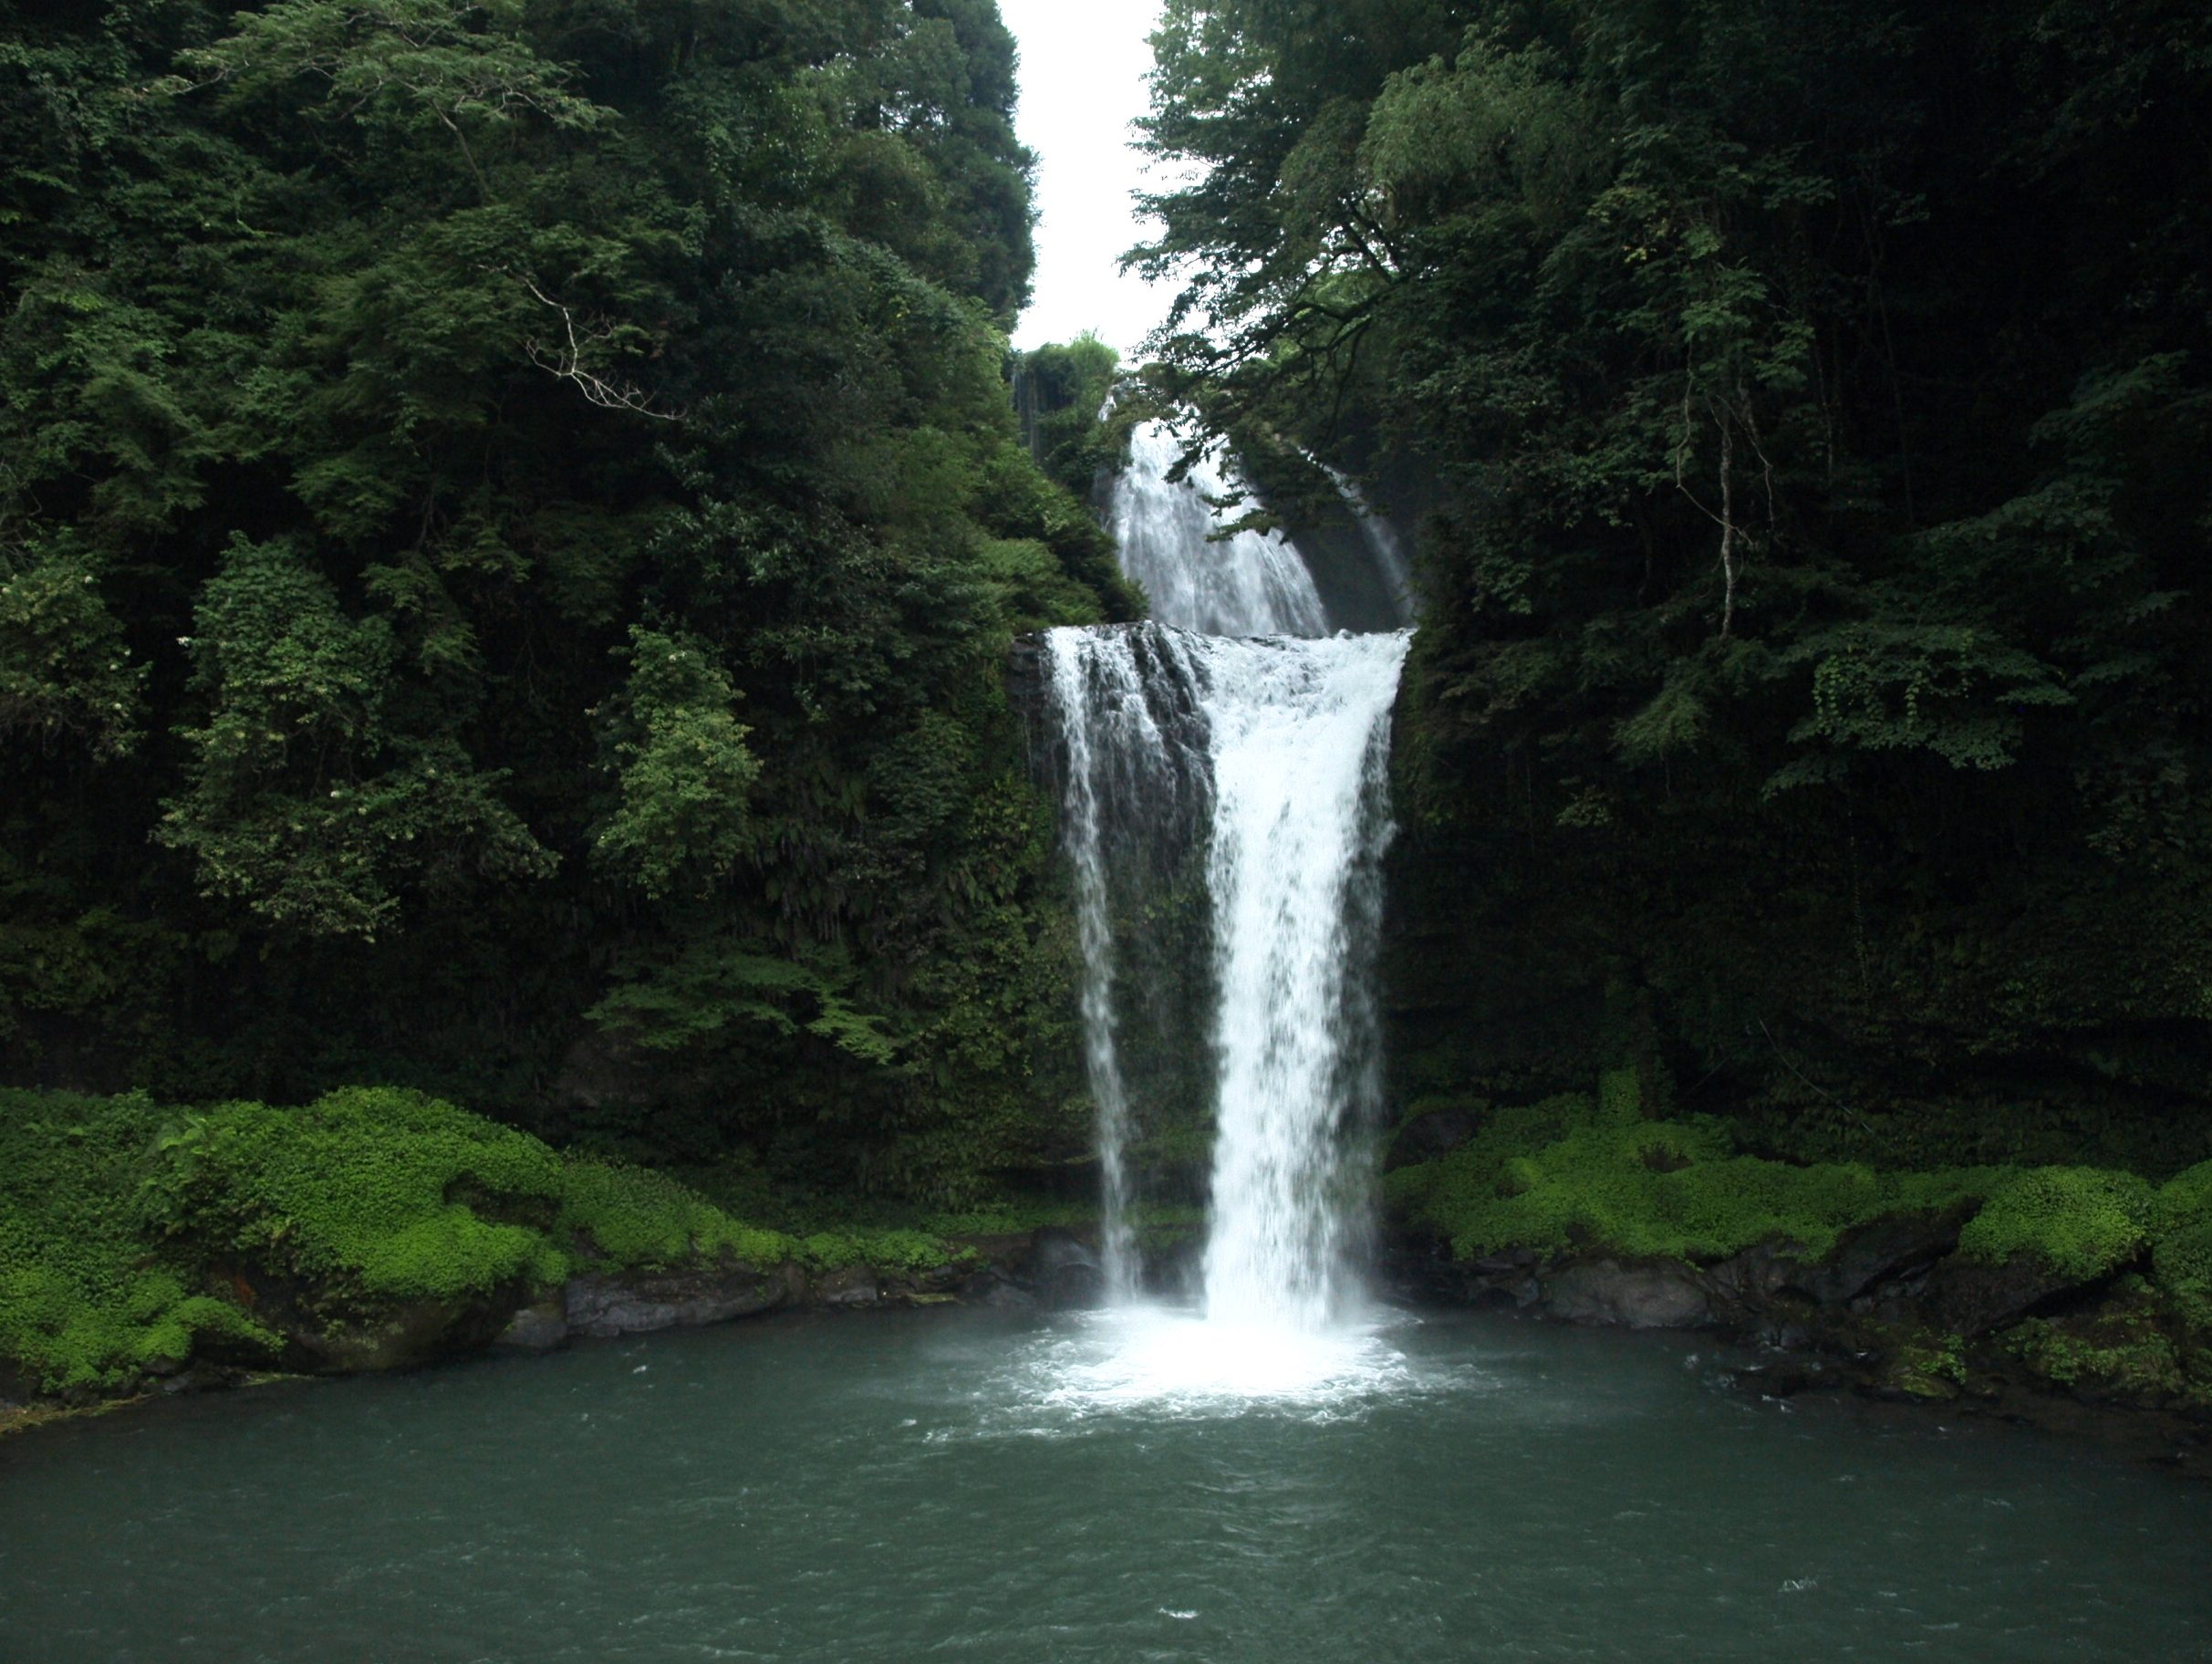 Oita Waterfall